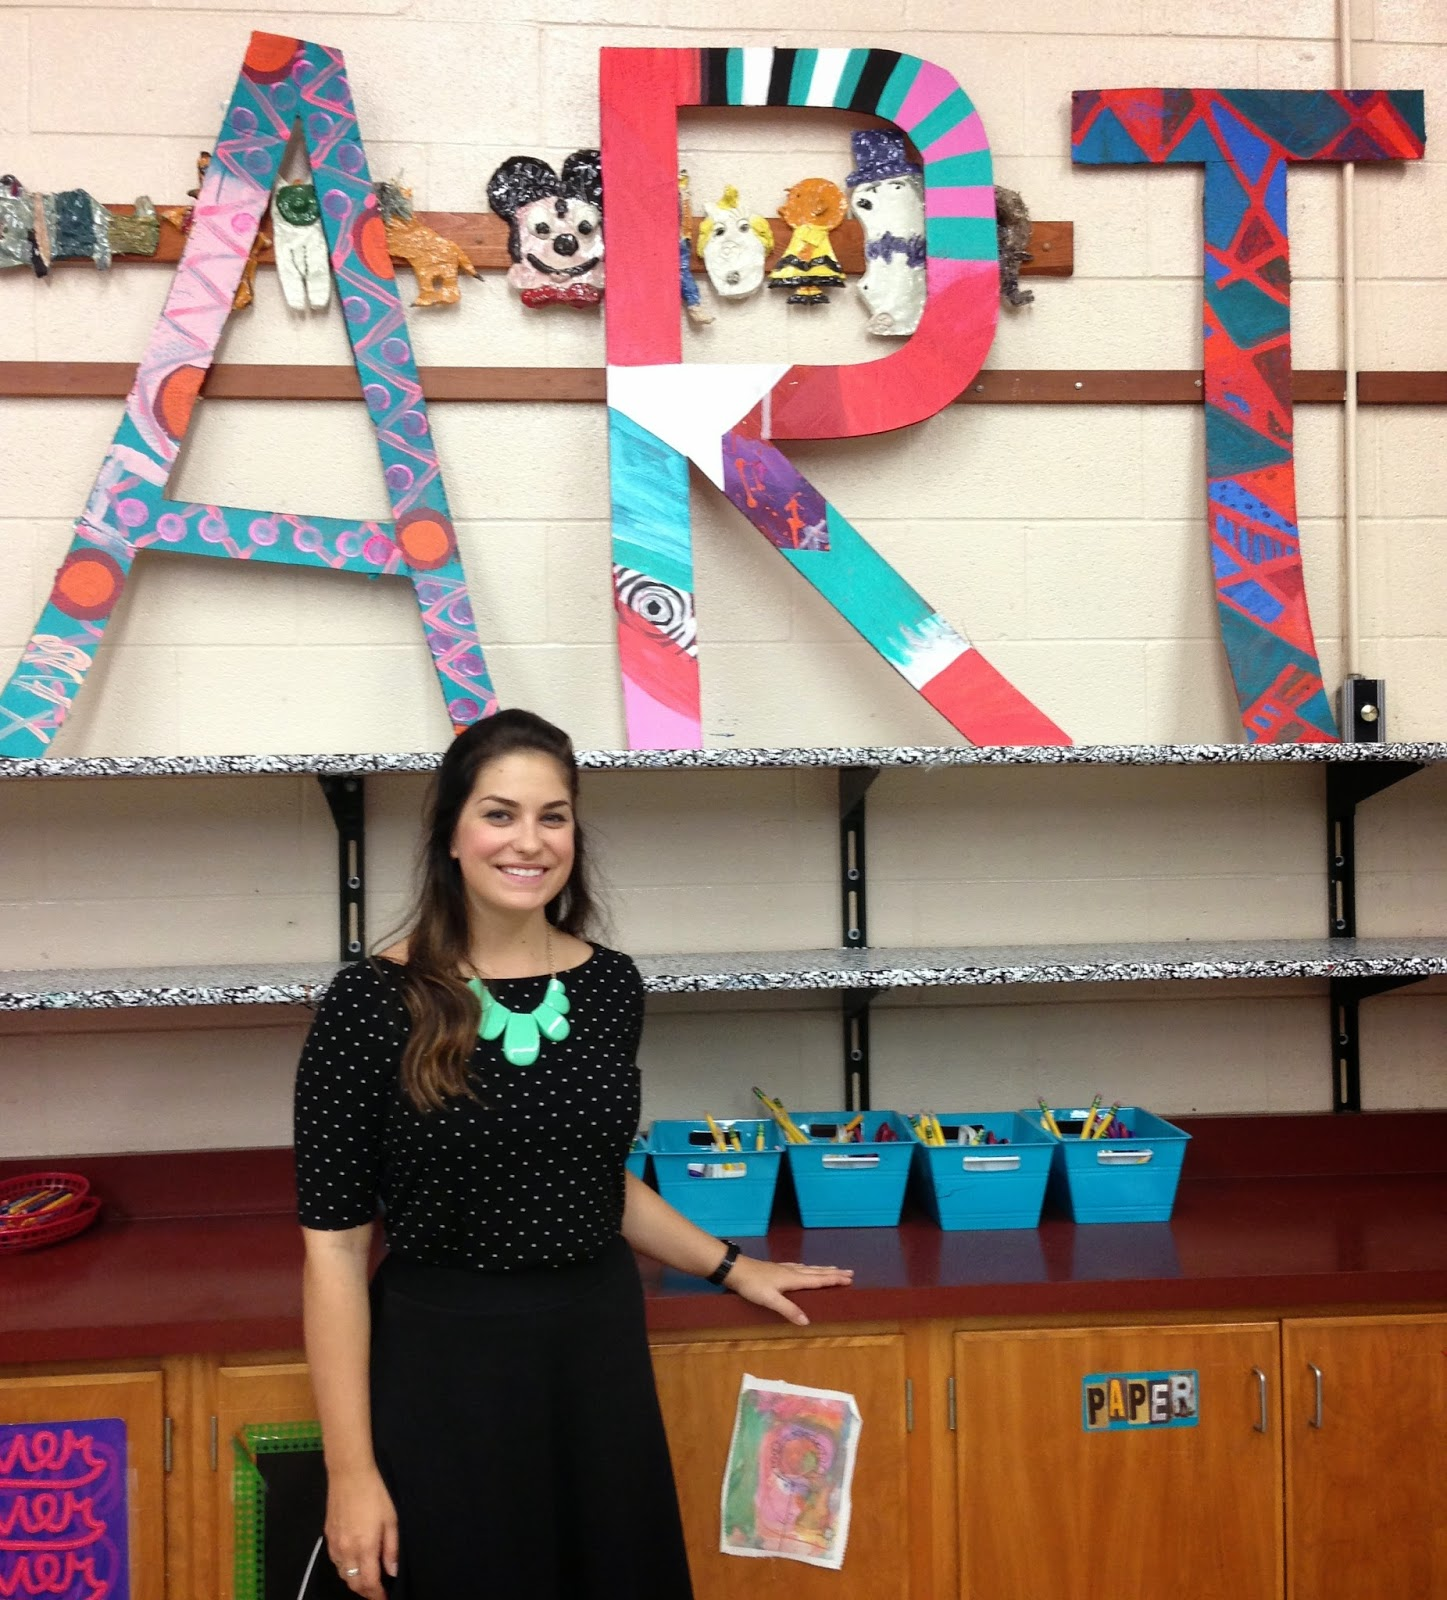 Ms. Murdock and ART in her classroom.